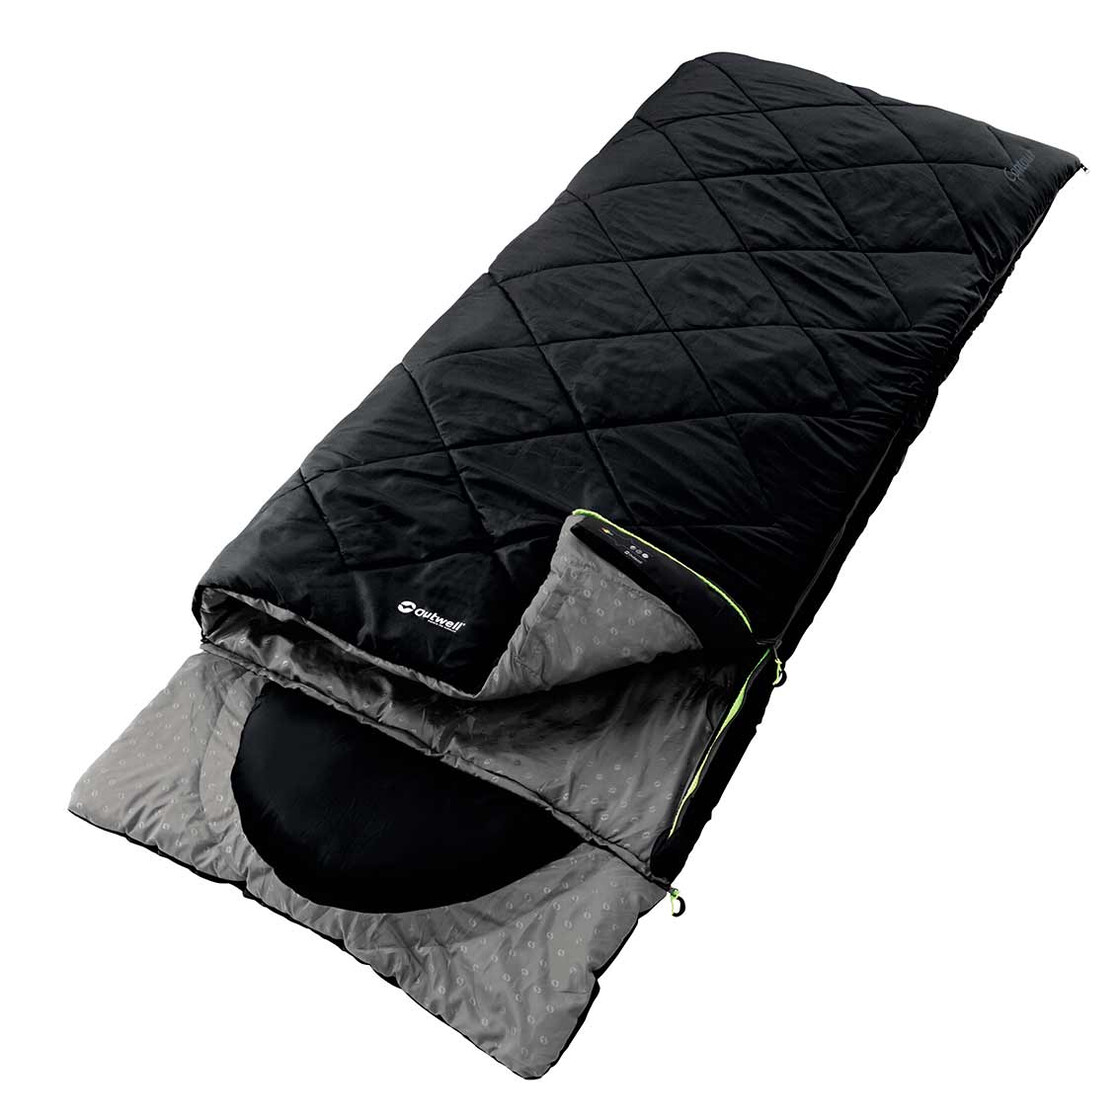 Outwell Sleeping Bag With Built In Pillow Contour Black